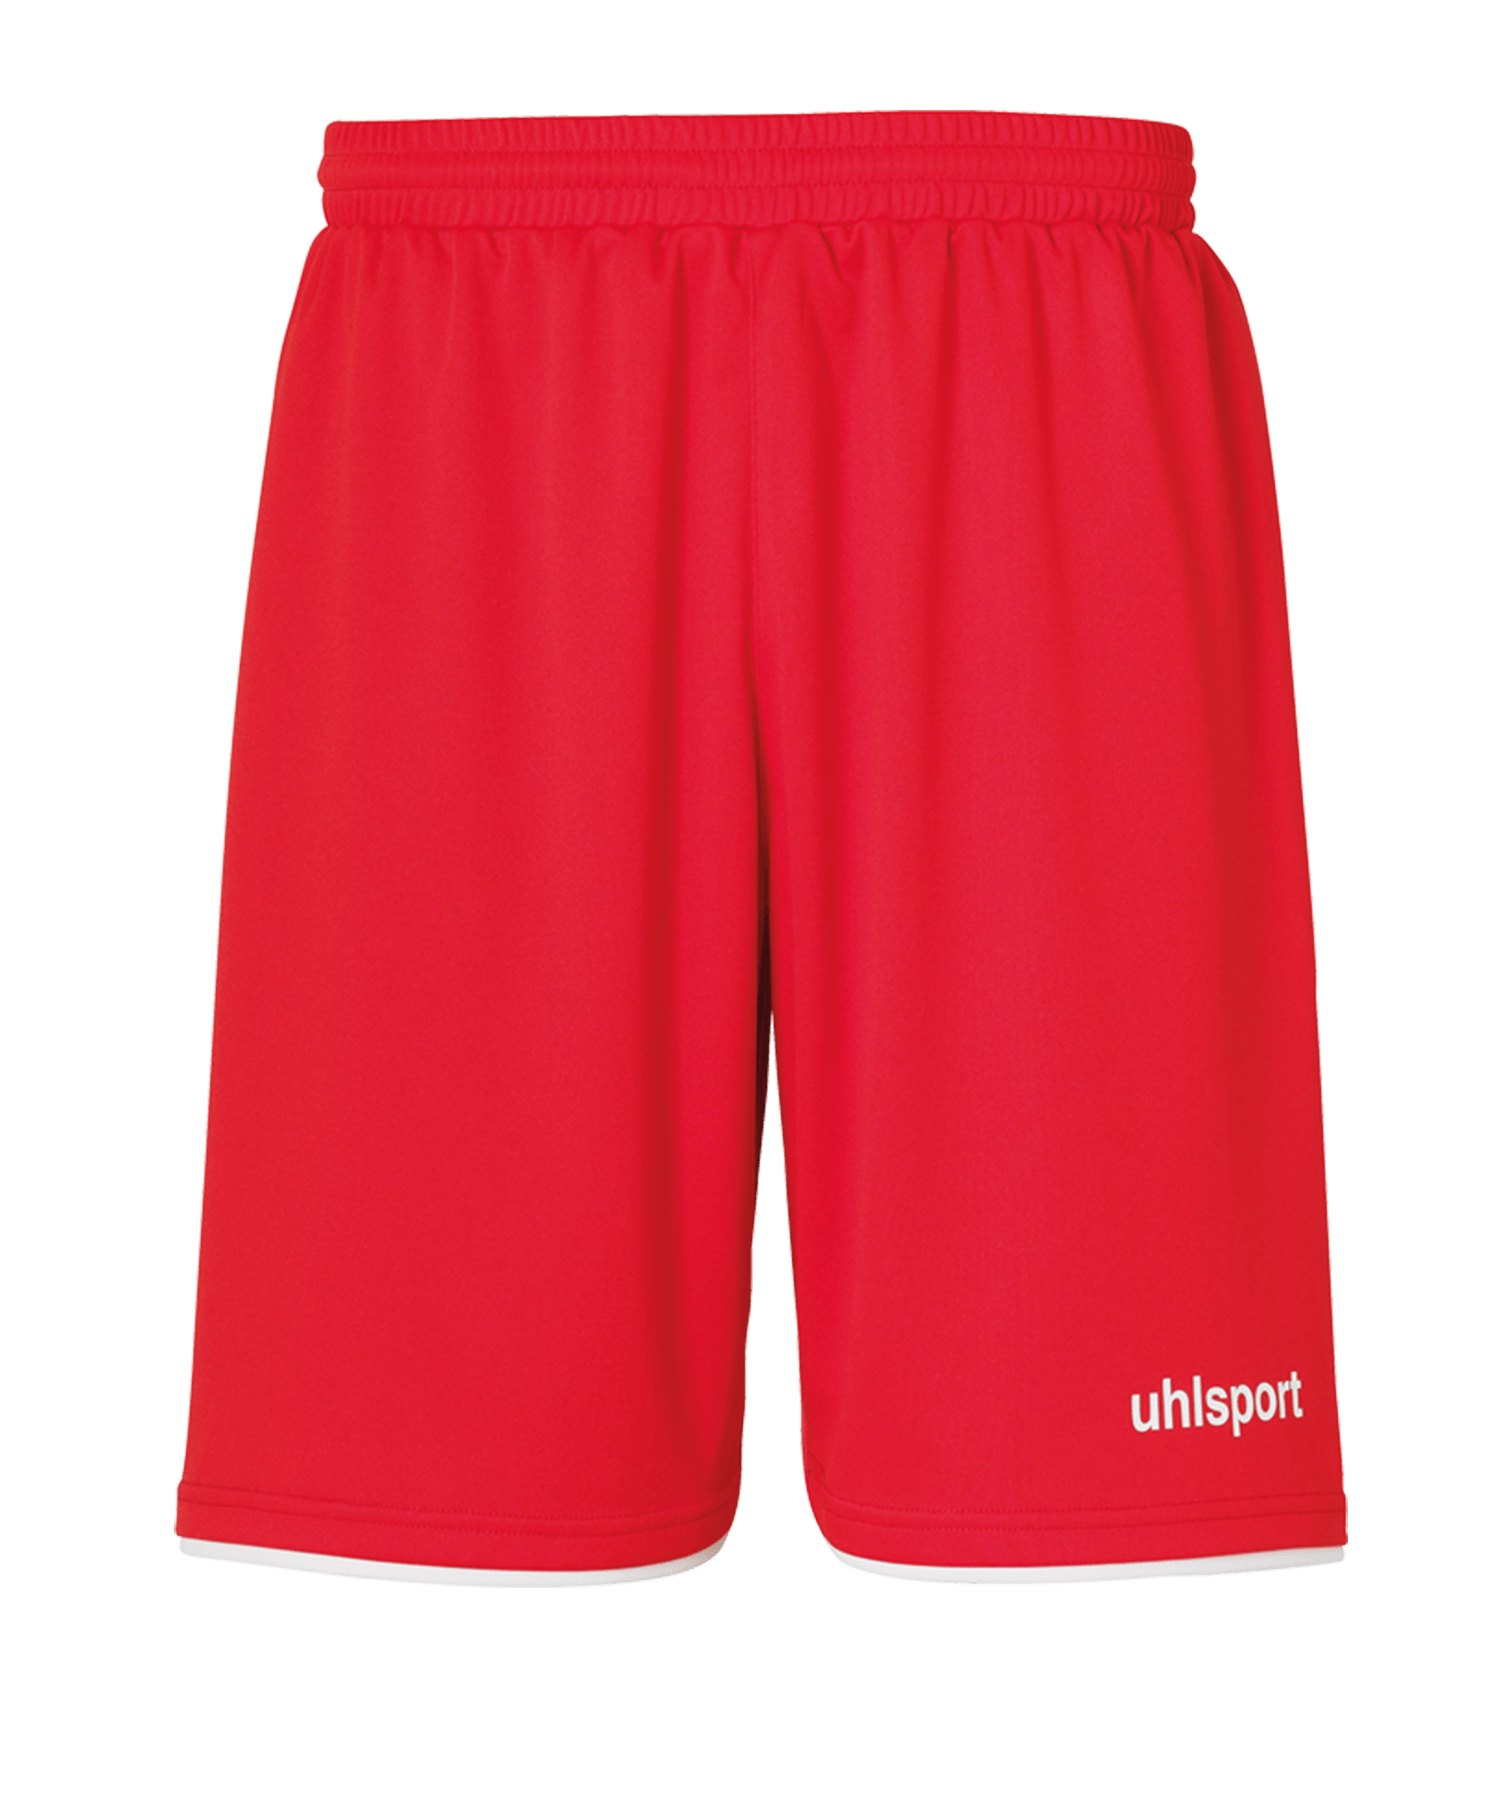 Uhlsport Club Short Rot Weiss F04 - rot